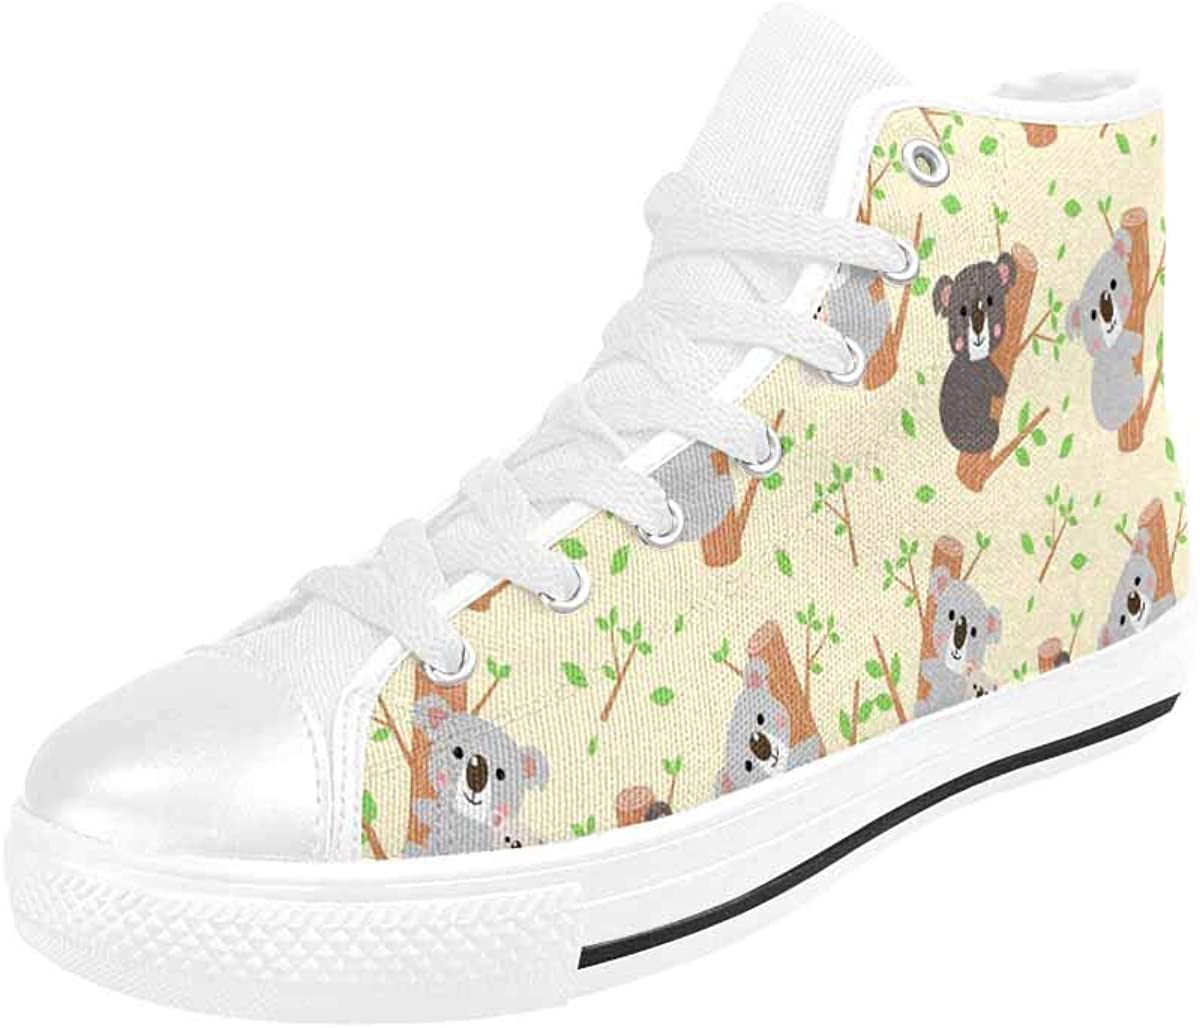 InterestPrint Adjustable High Top Canvas Shoes with Metal Eyelets and Soft Lining Cute Frogs and Crowns